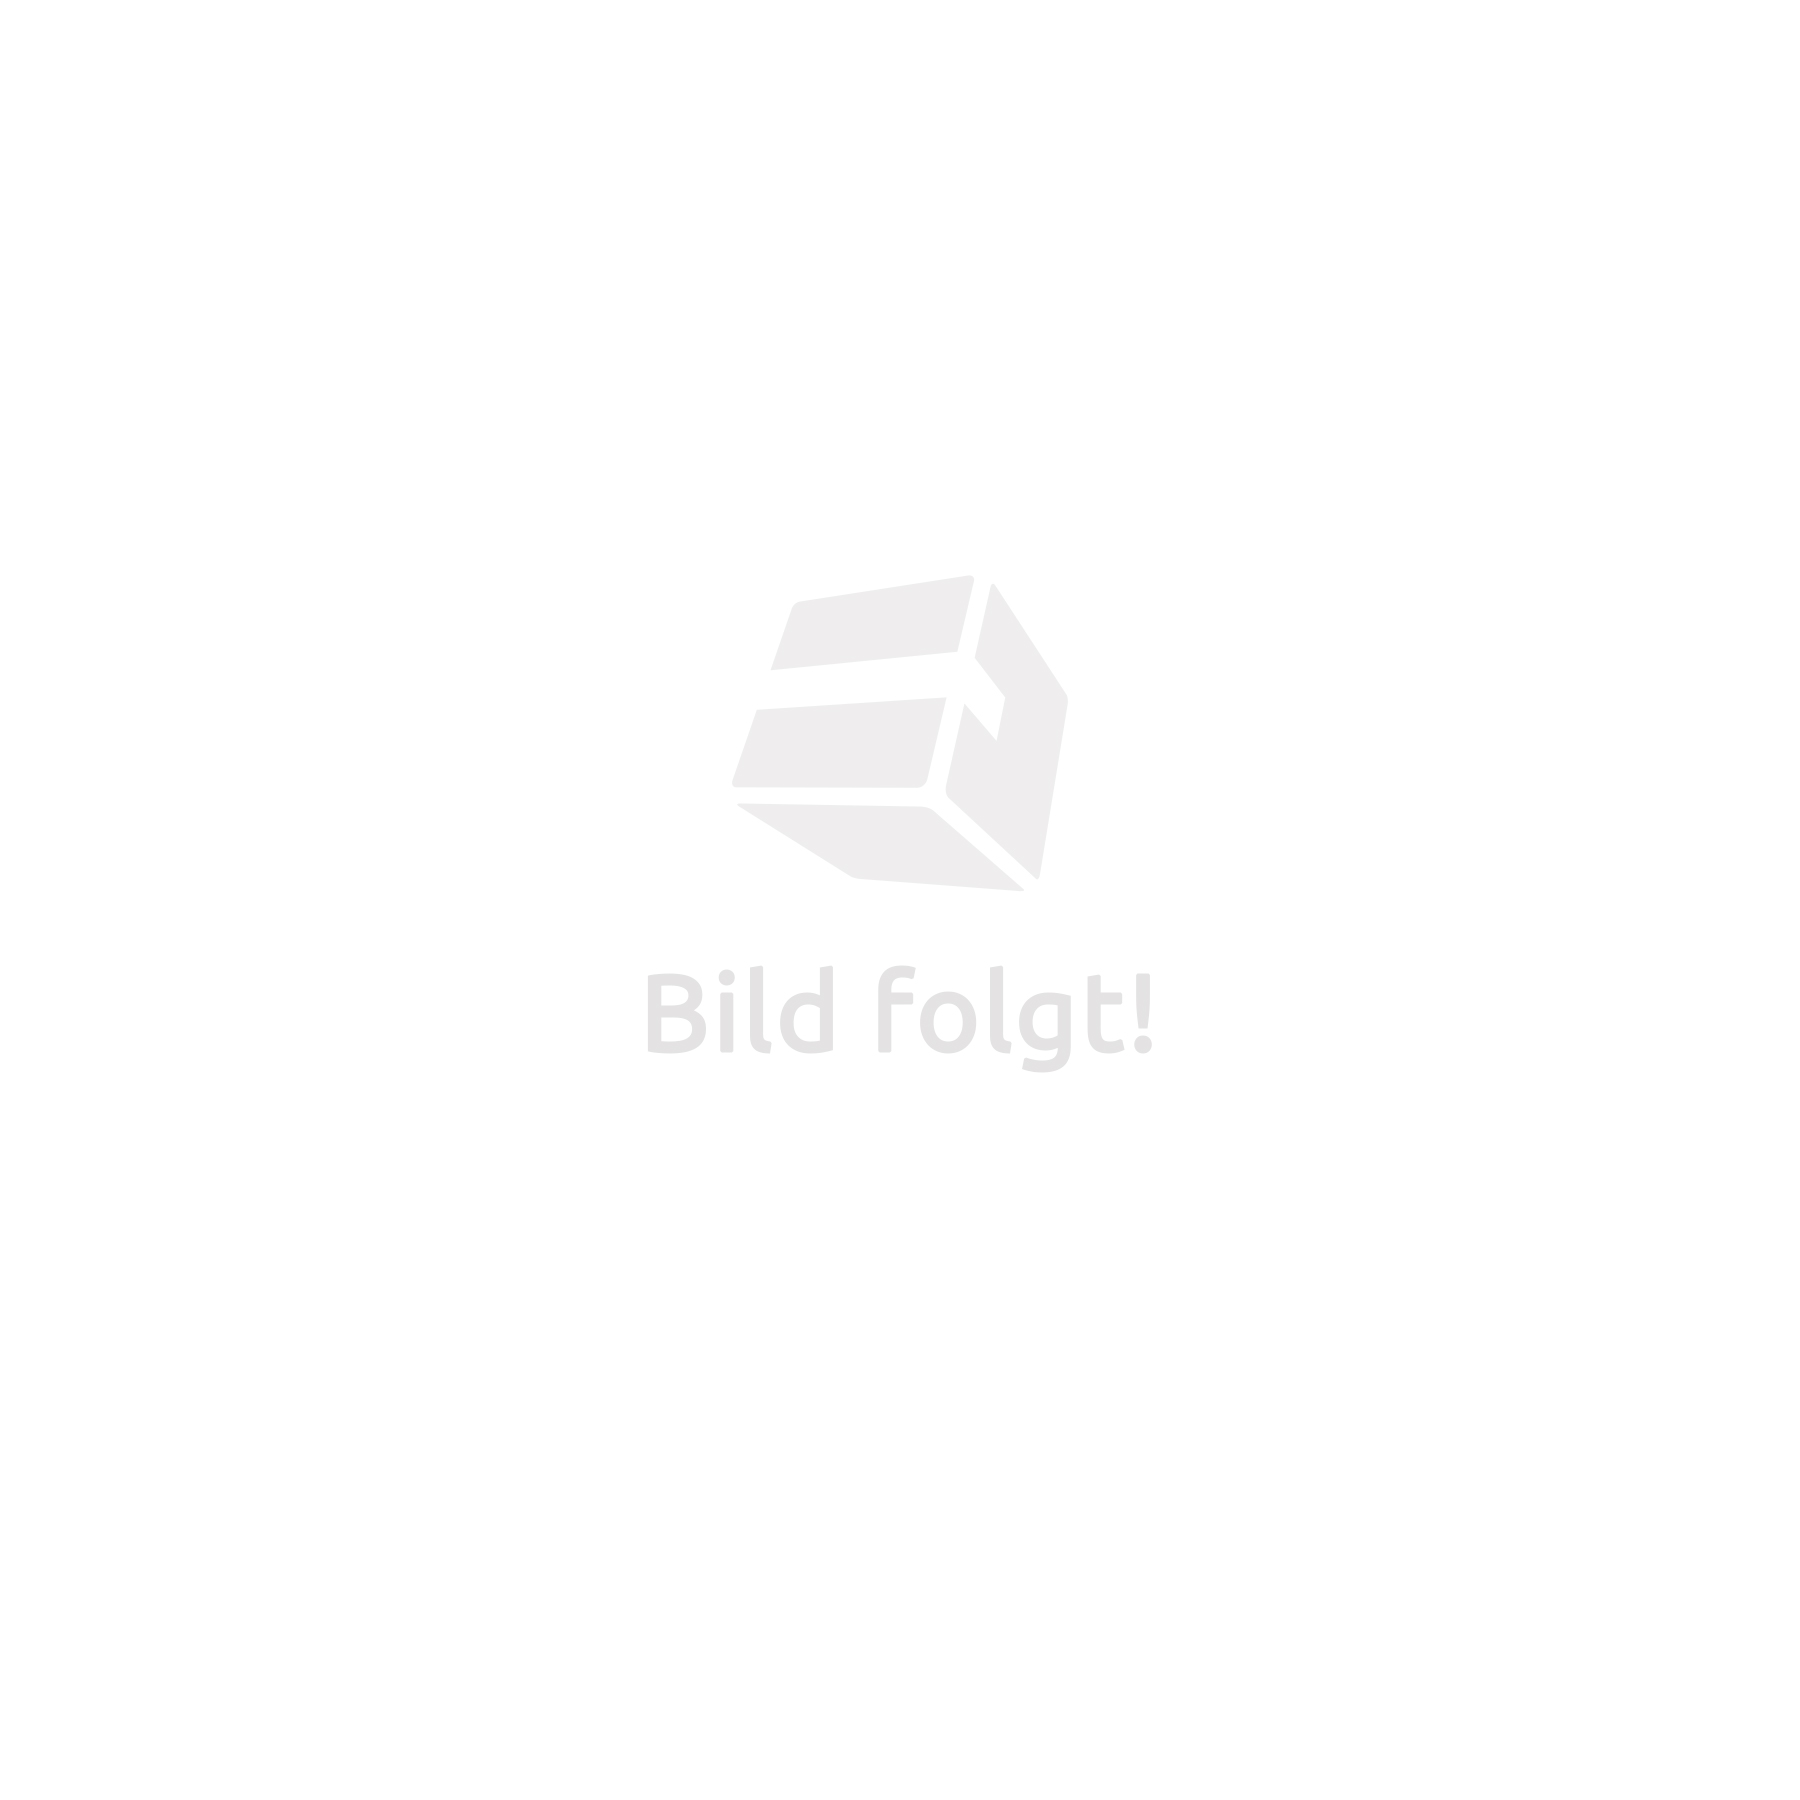 Office chair executive racing gaming car seat with back for Chair neck support attachment uk